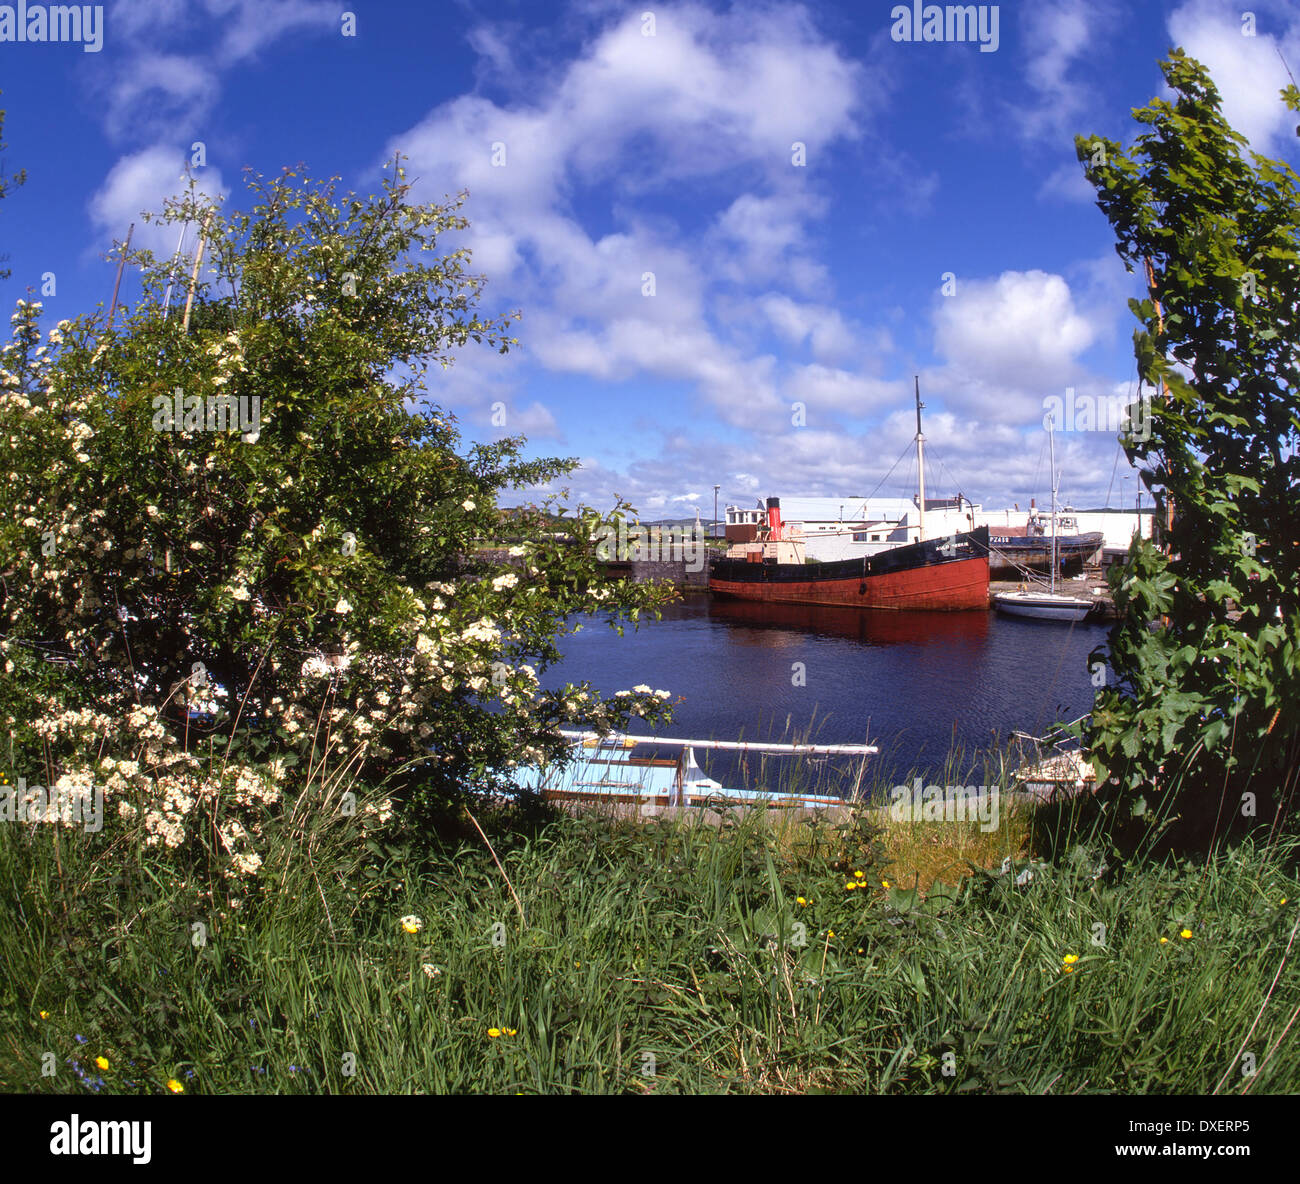 Puffer Auld reekie sits in the canal basin at Ardrishaig on the crinan canal,Argyll Stock Photo